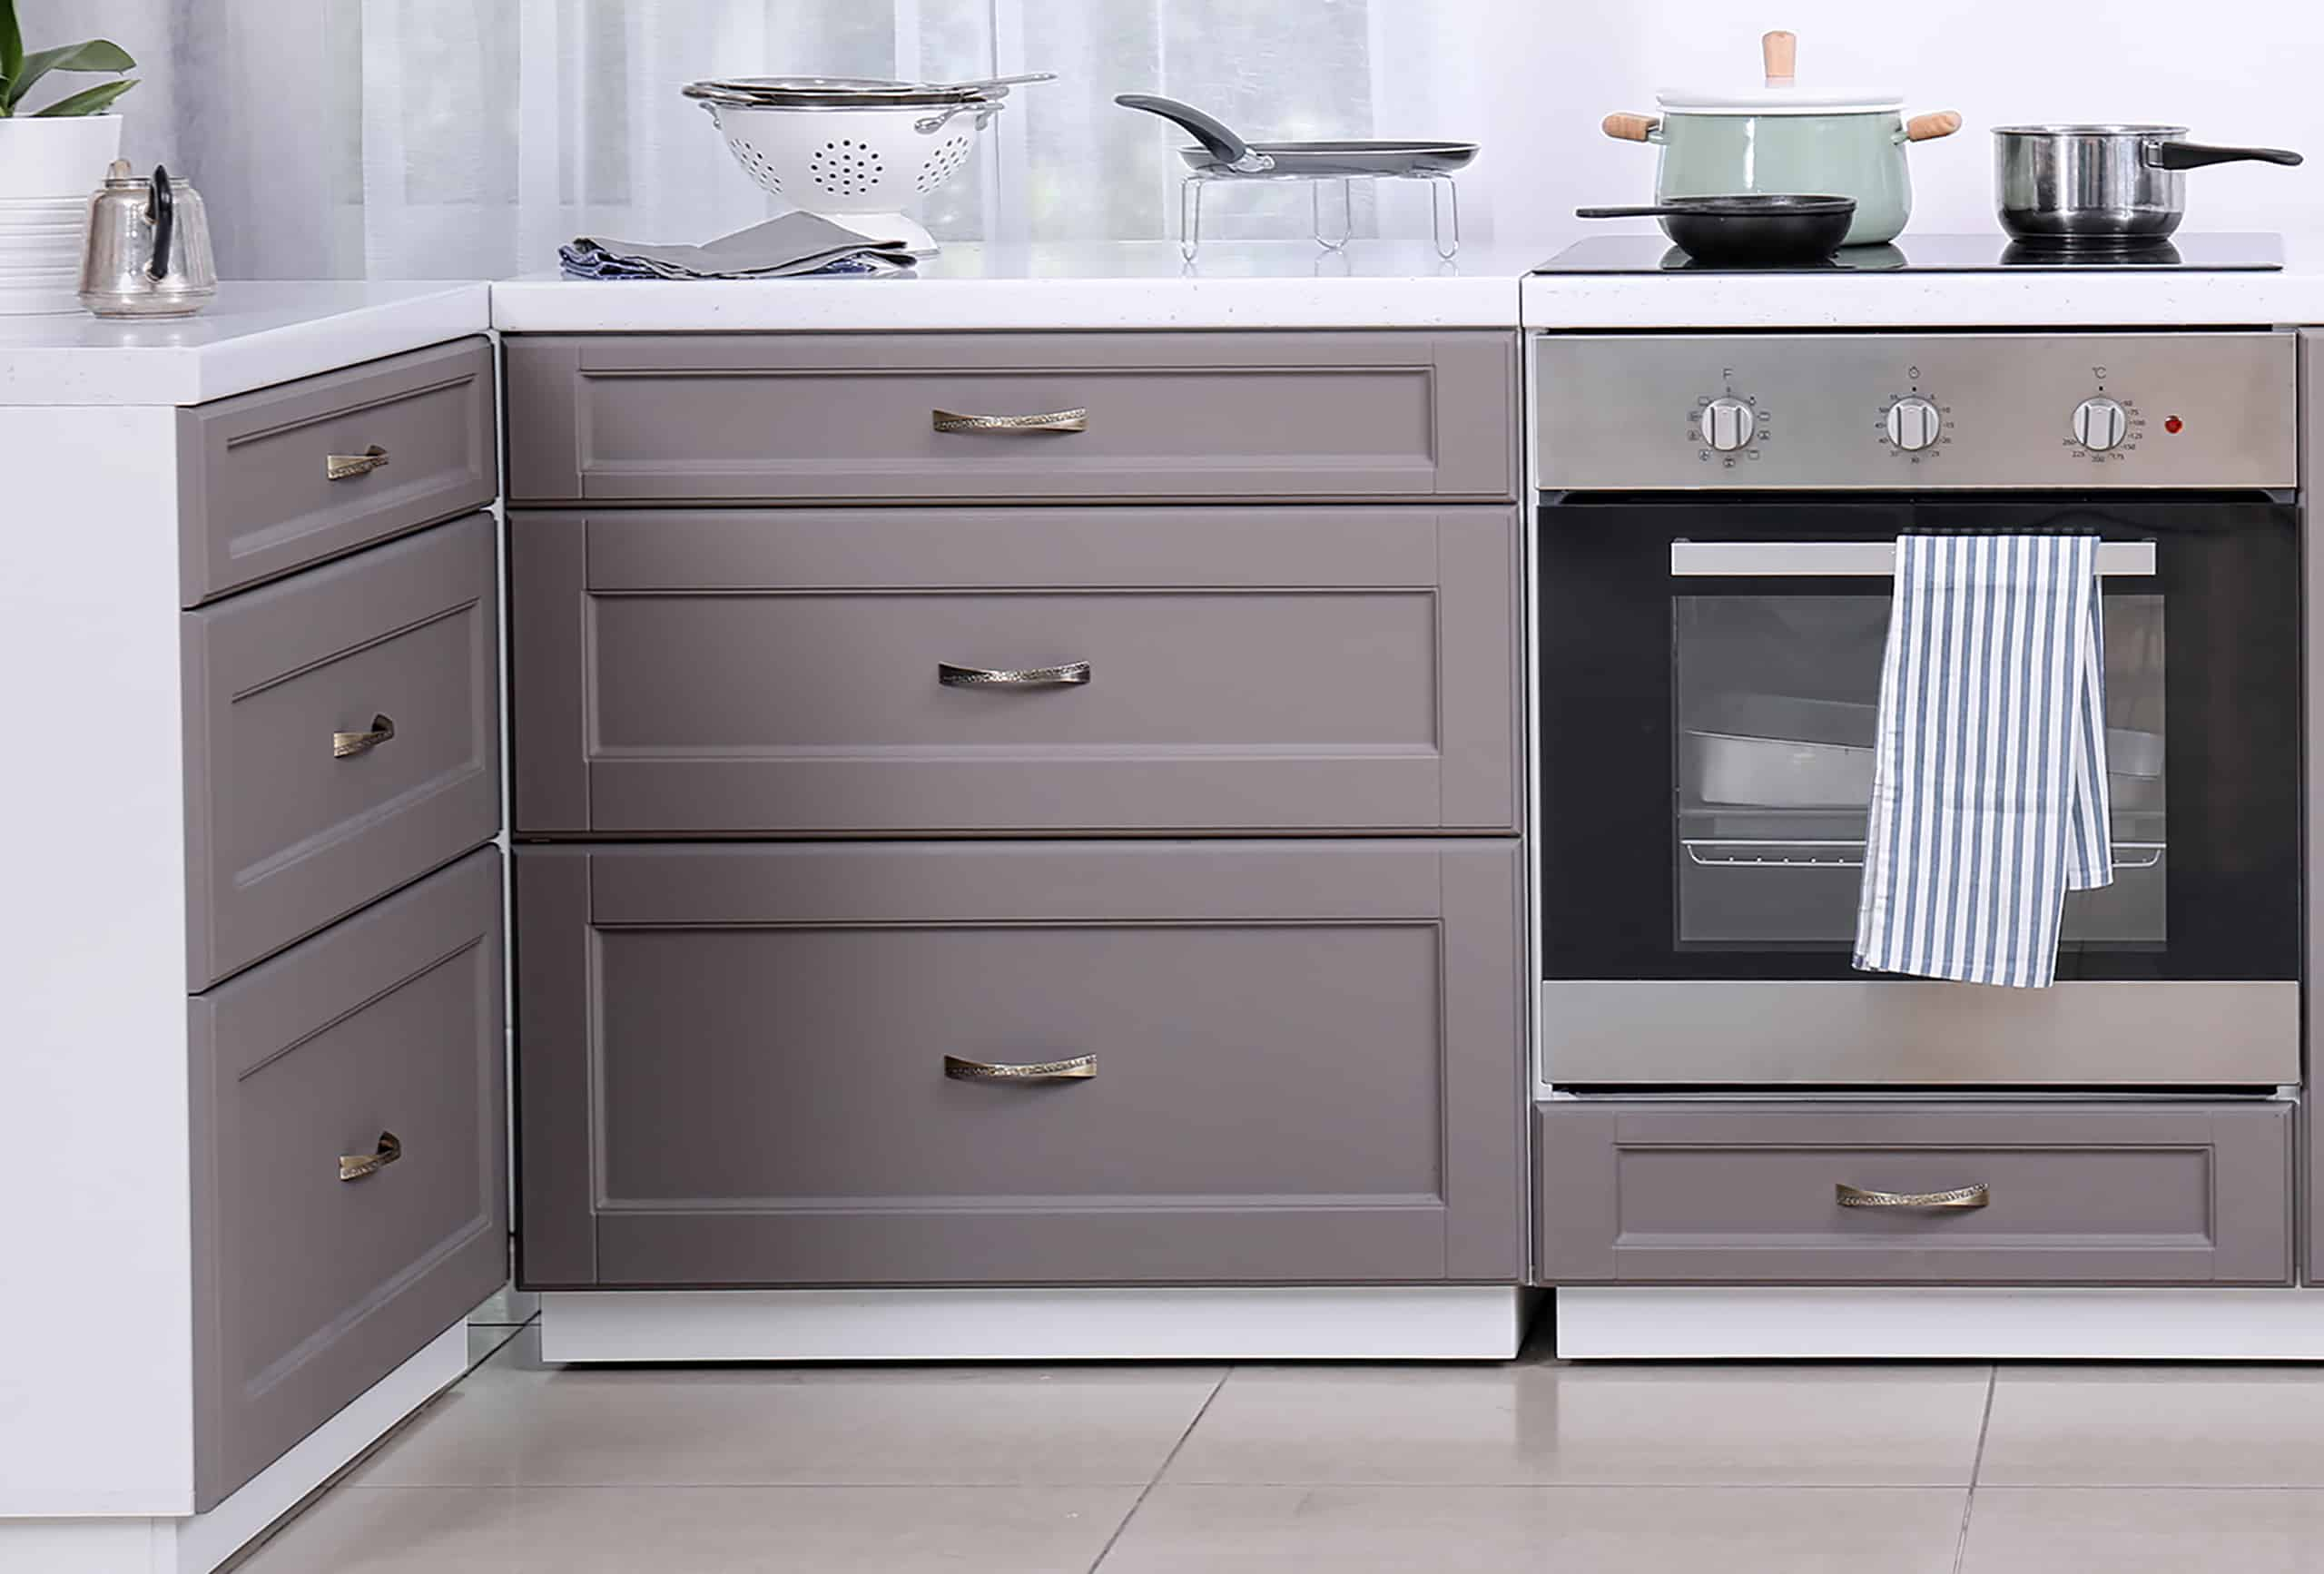 shaker style modern kitchen cabinet drawers centered hardware pulls recessed panel